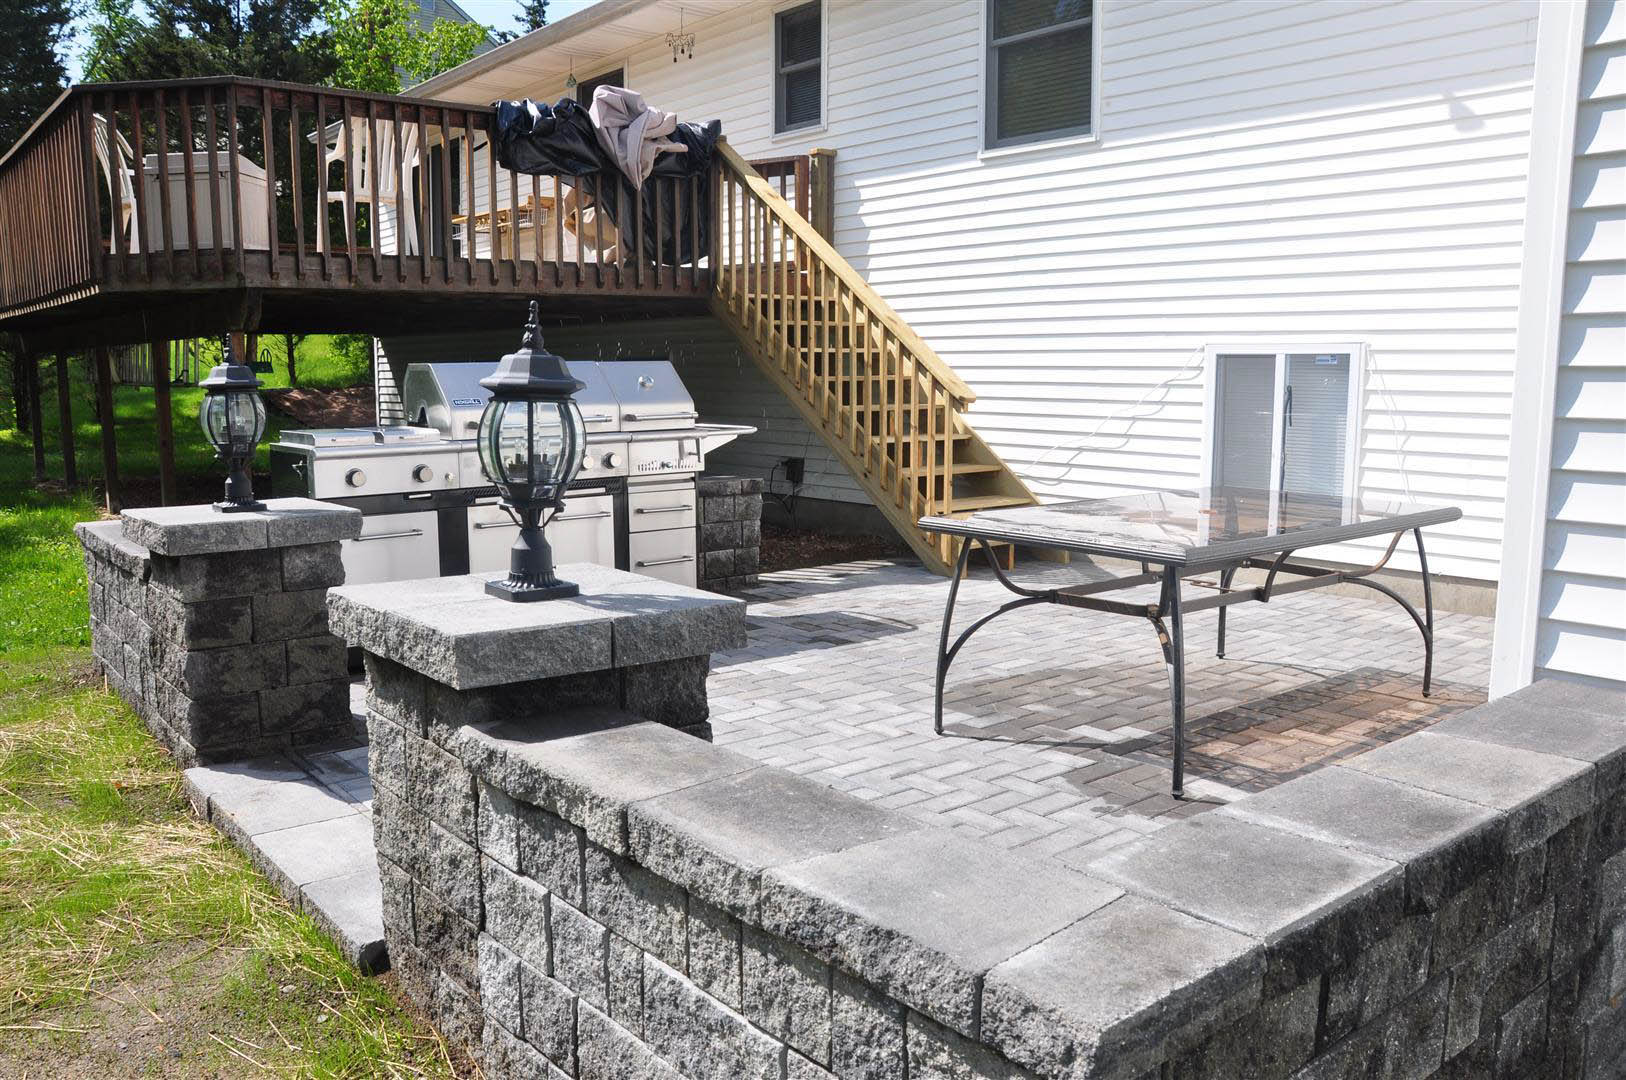 Patio, Patio Construction, Patio Contractor, Patio Design, Patio Landscape,  Stone Patio